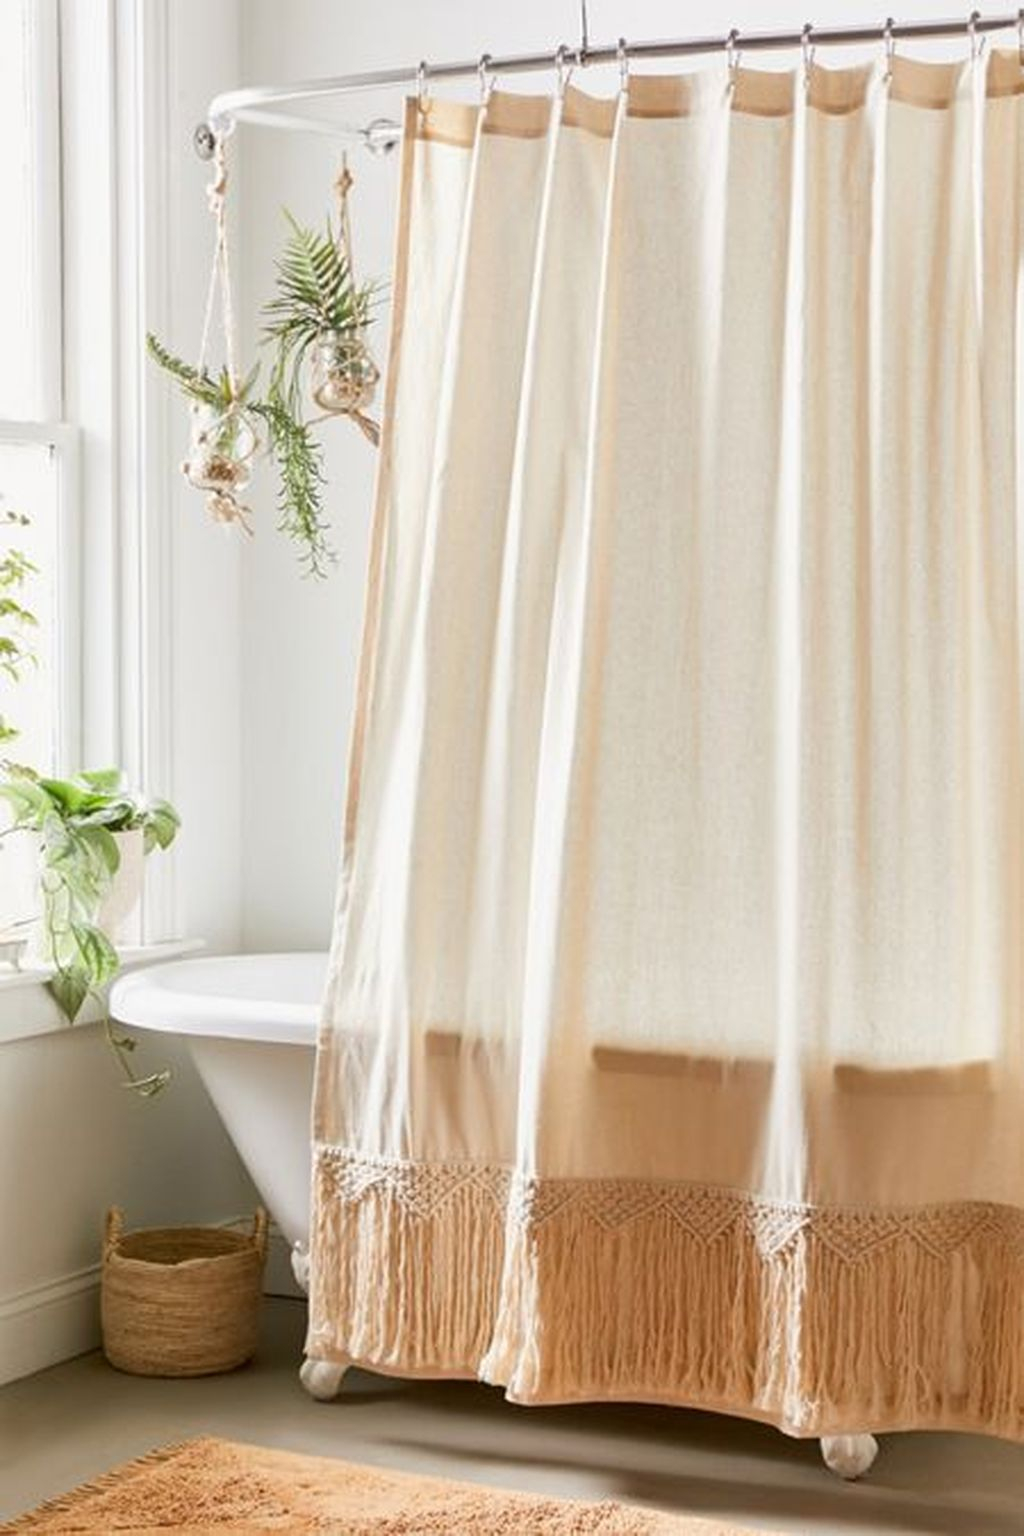 Fabulous Bathroom Design Ideas With Boho Curtains24